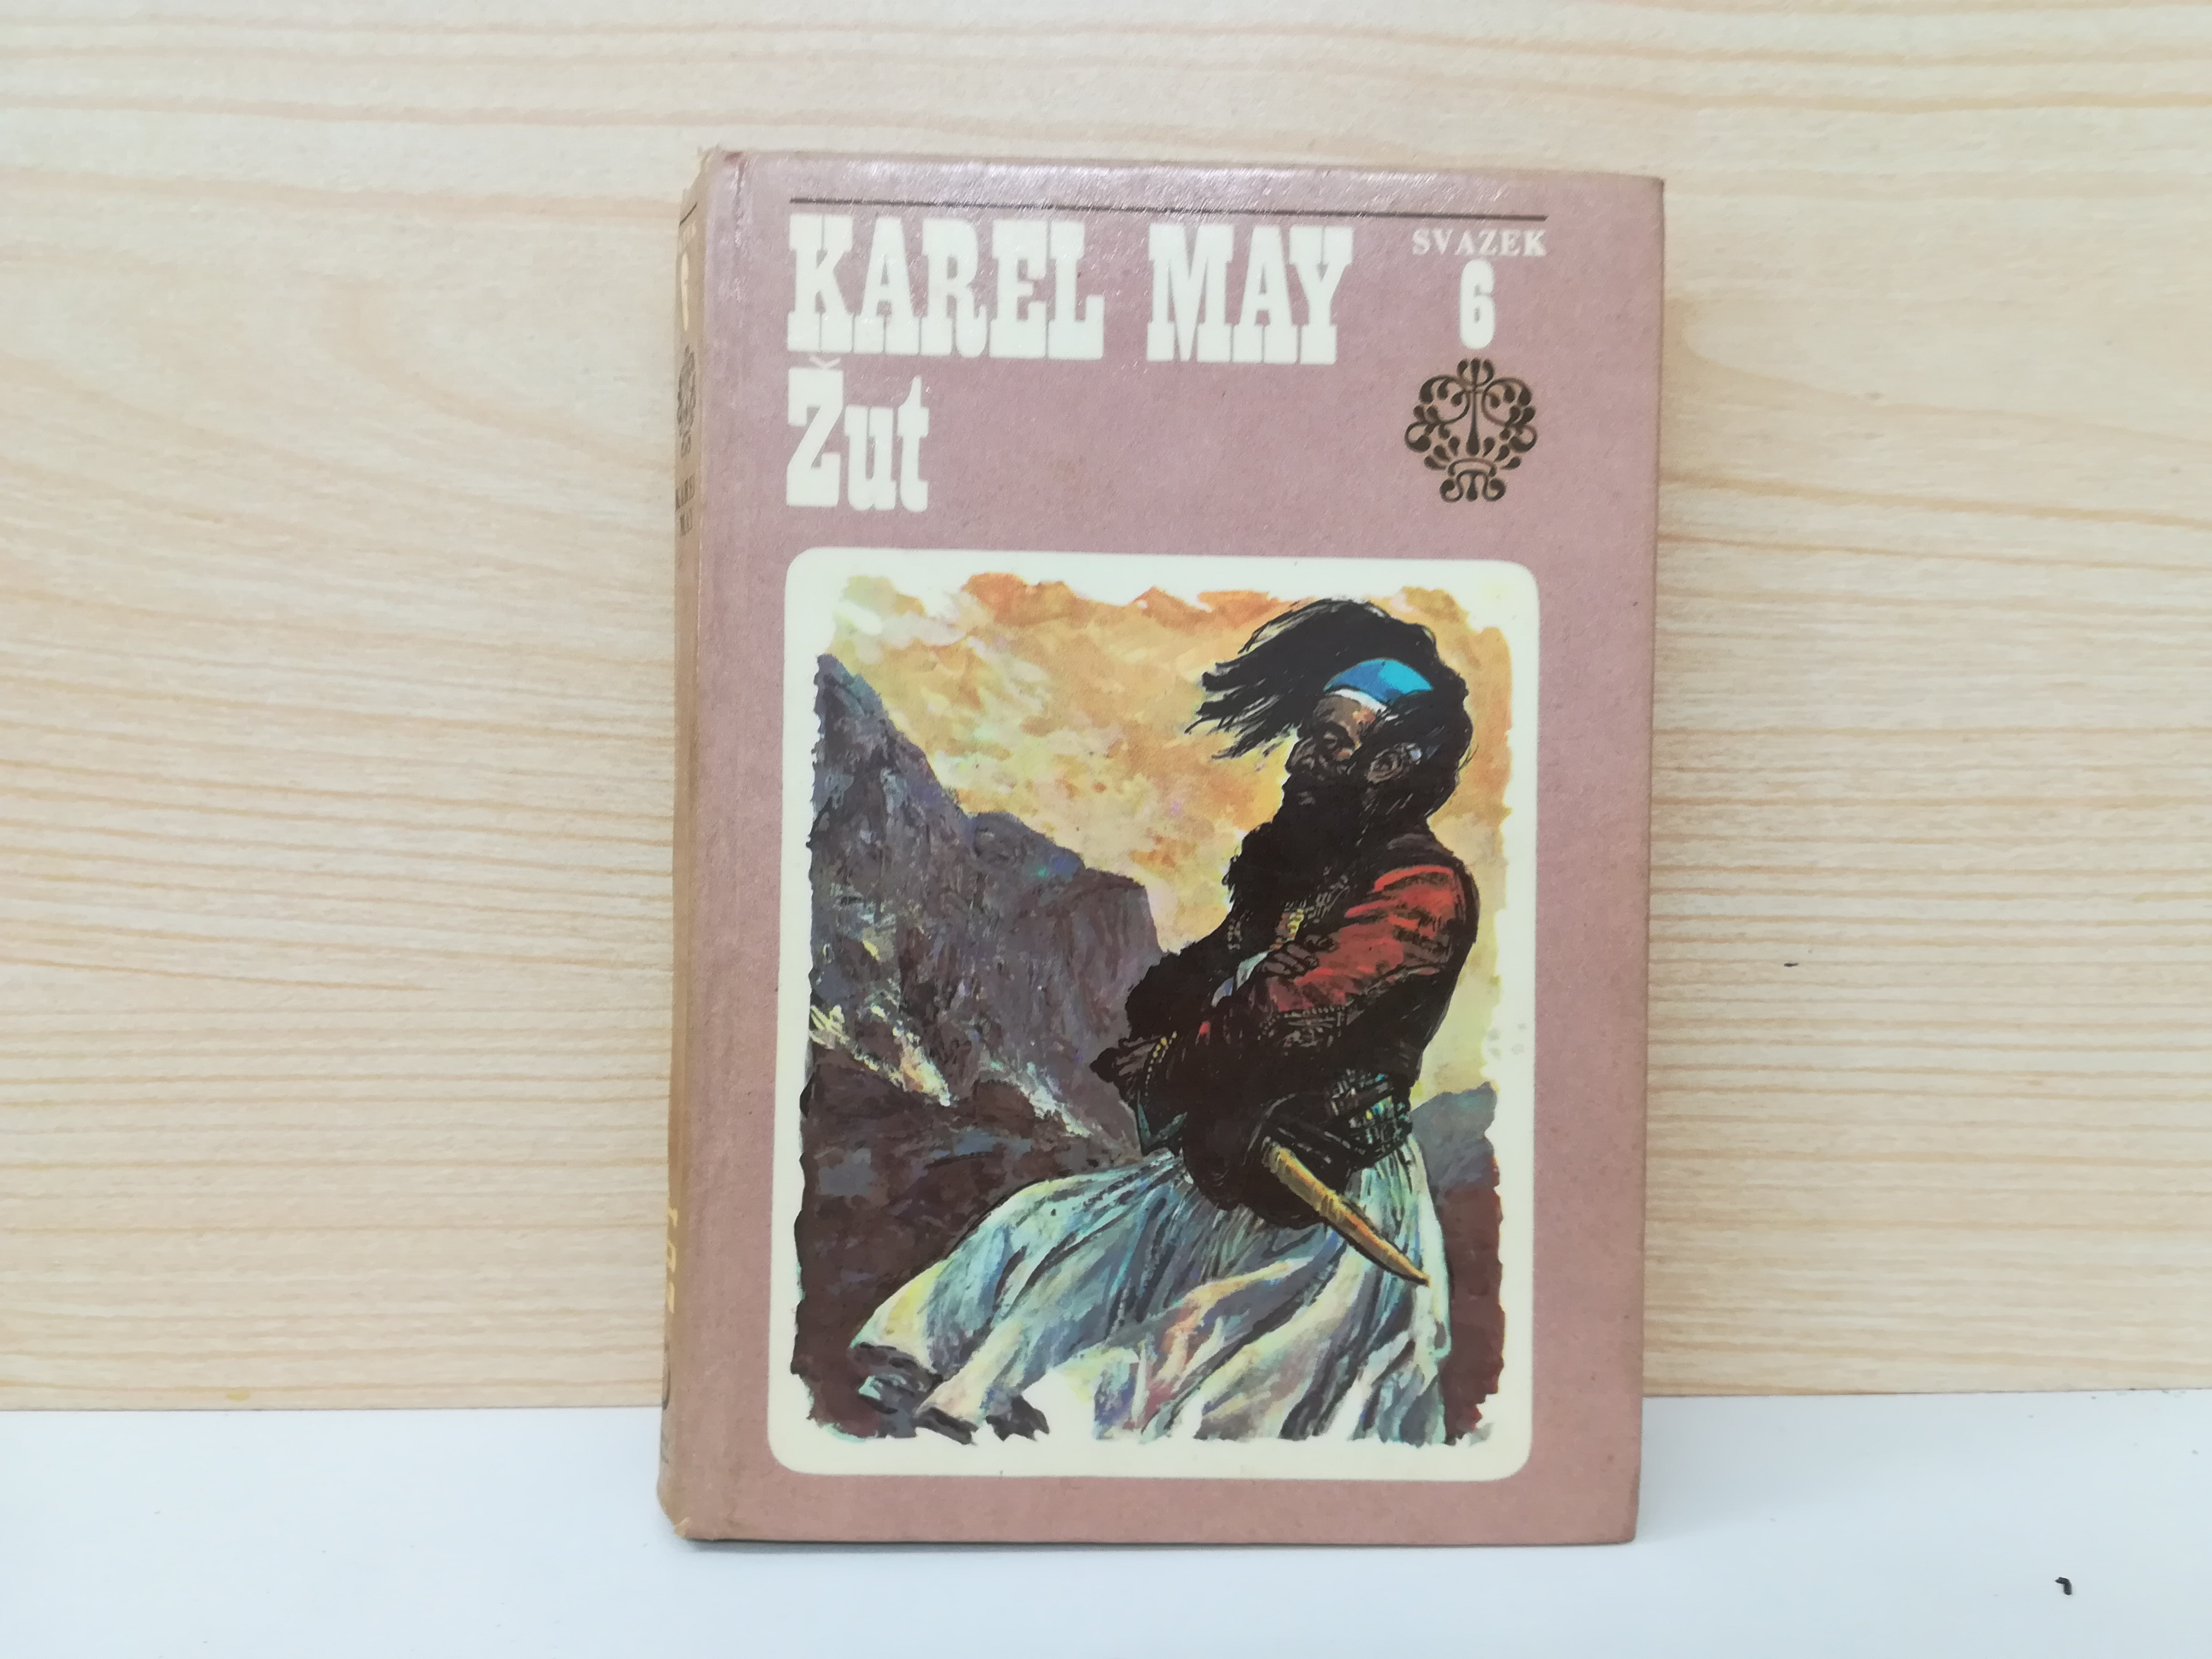 Karl May - Žut